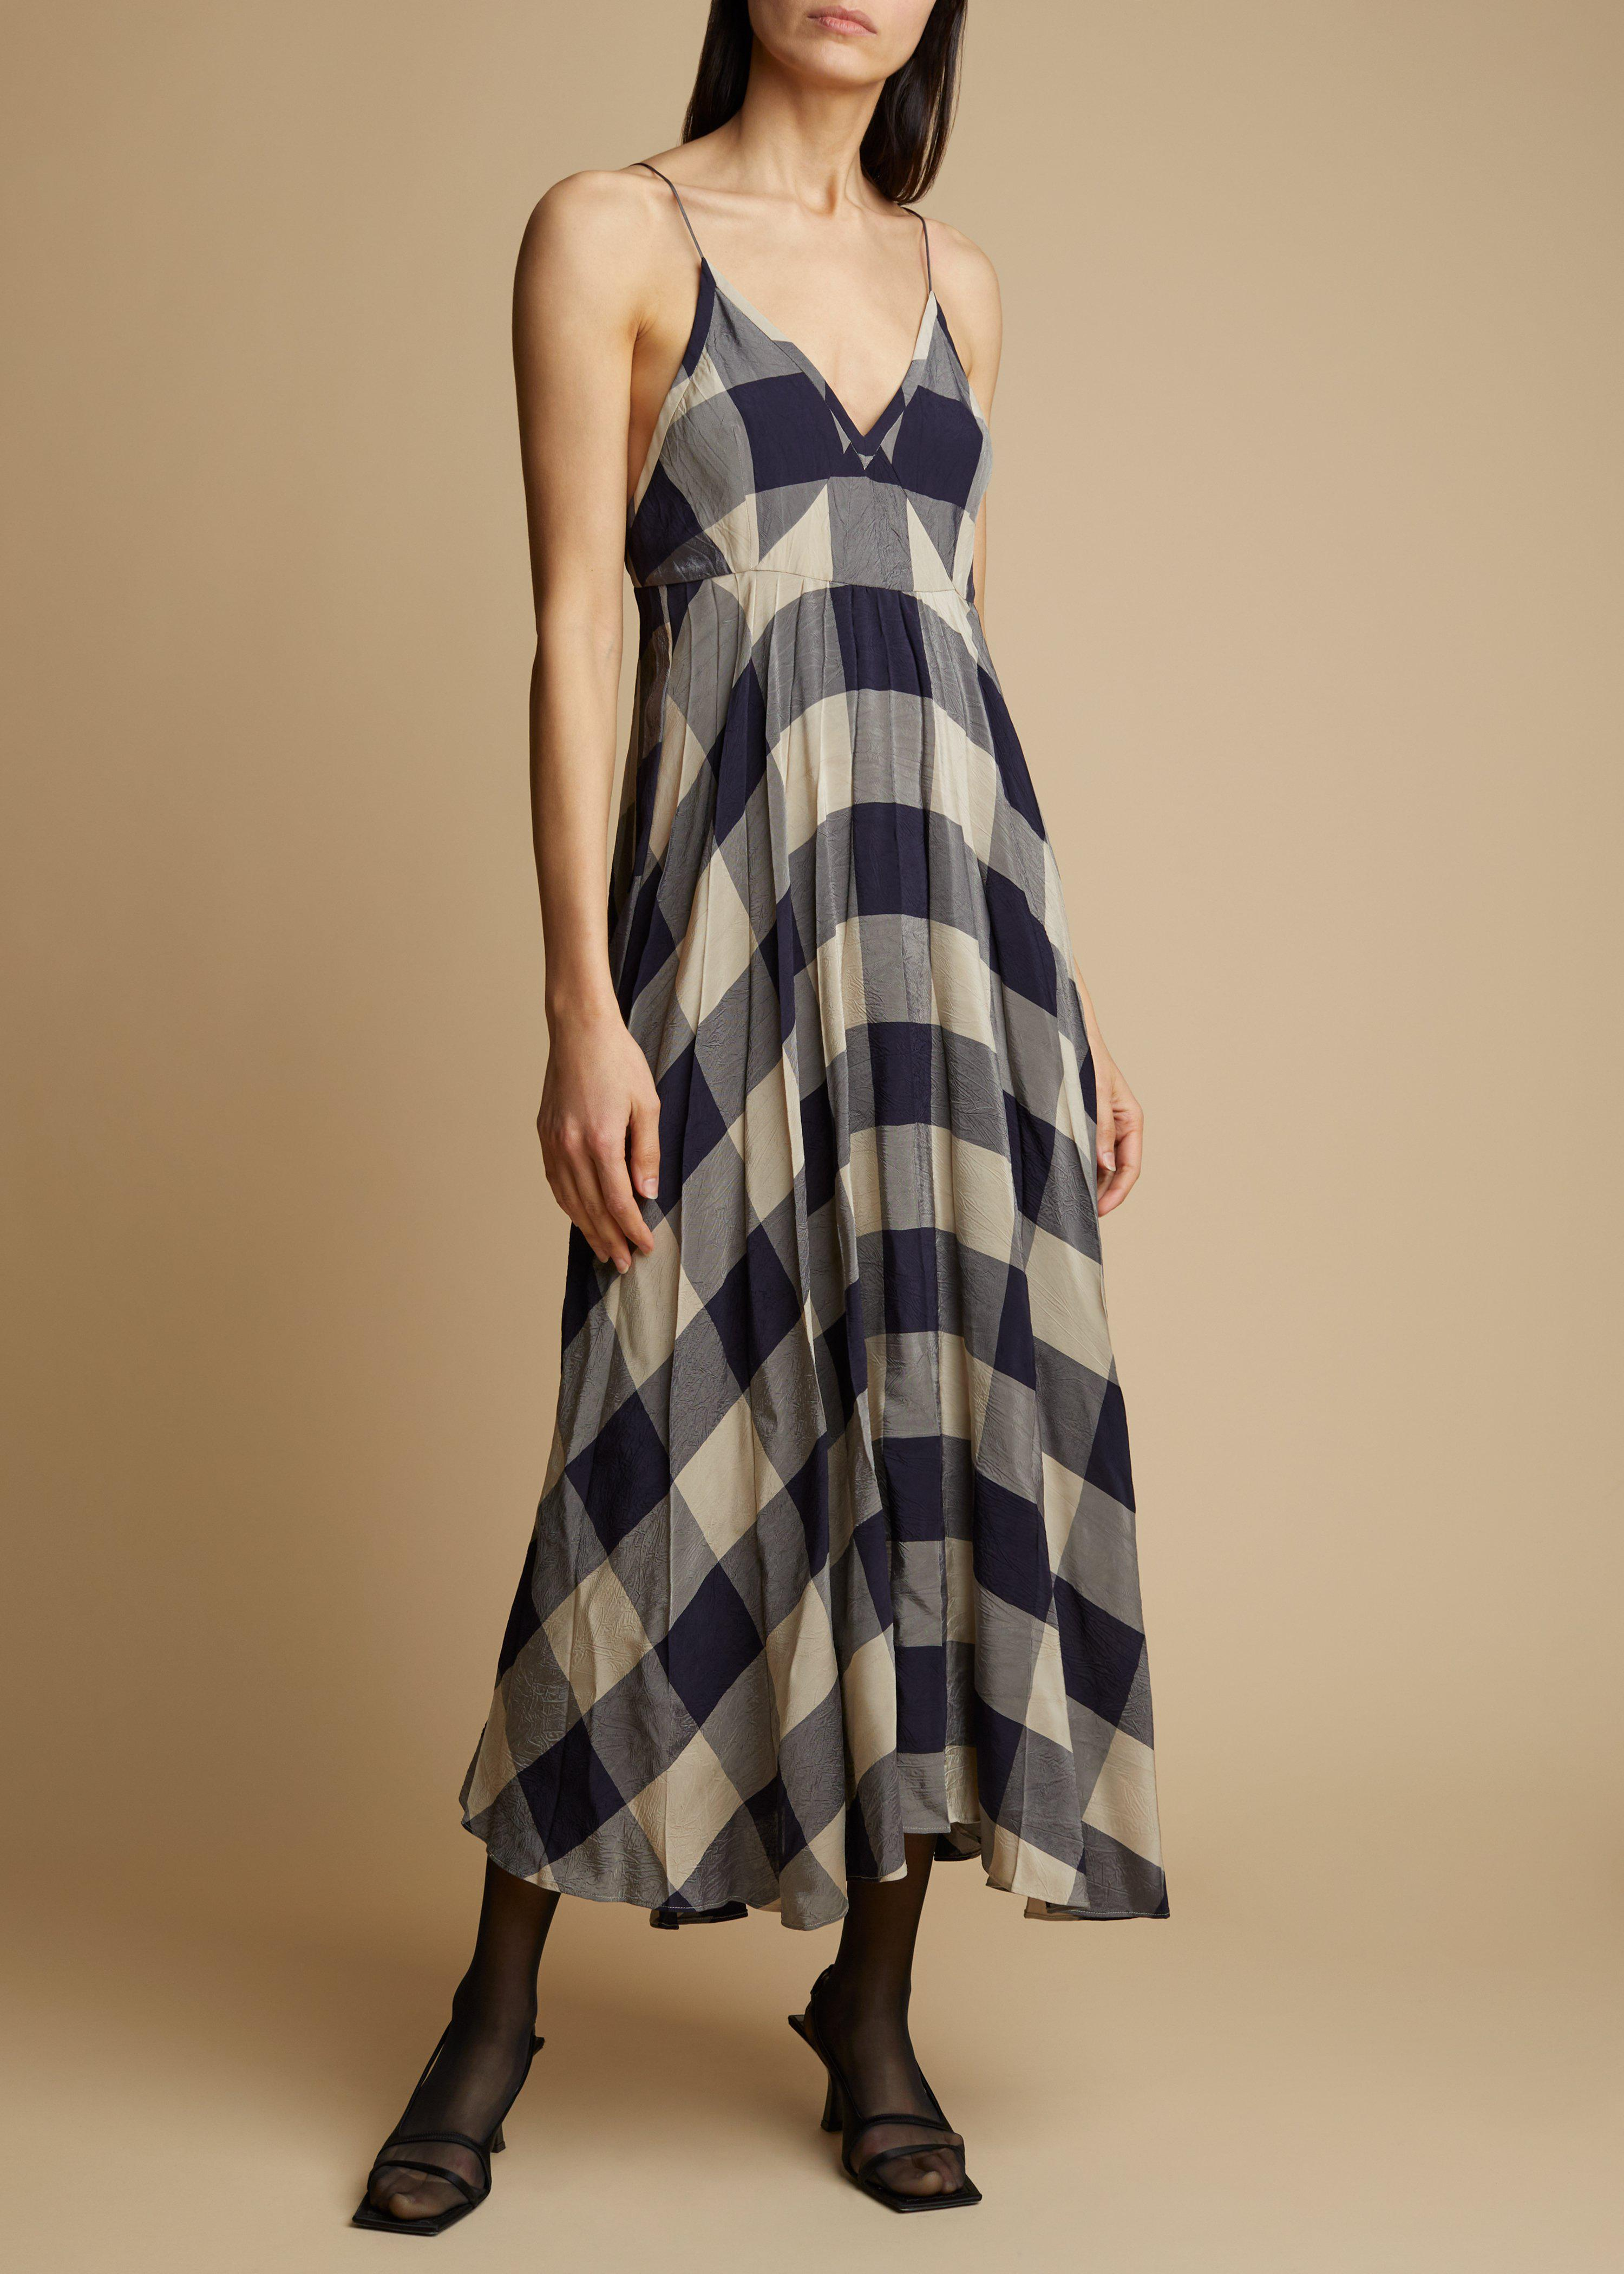 The Lianne Dress in Navy and Sand Check